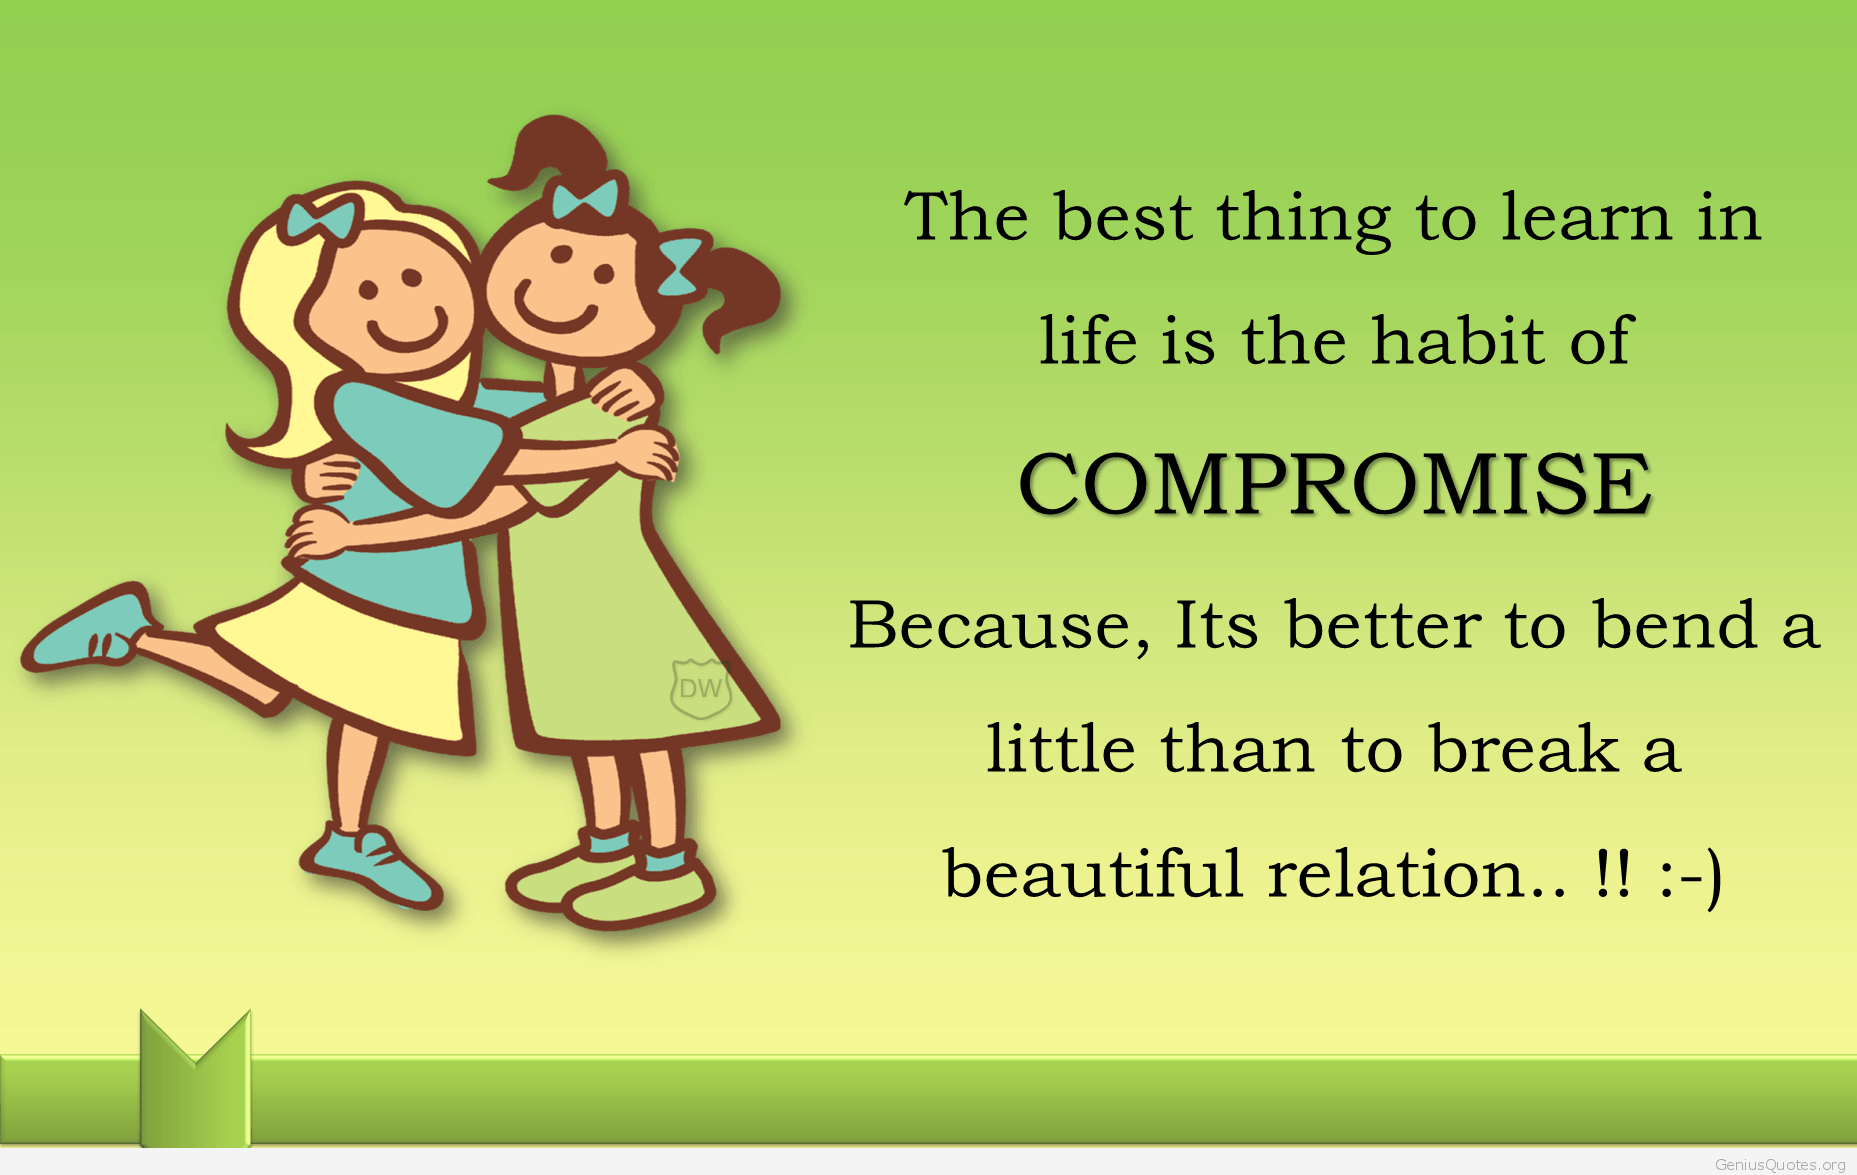 The best thing to learn in life is the habit of COMPROMISE. Because, Its better to bend a little than to break a beautiful relation